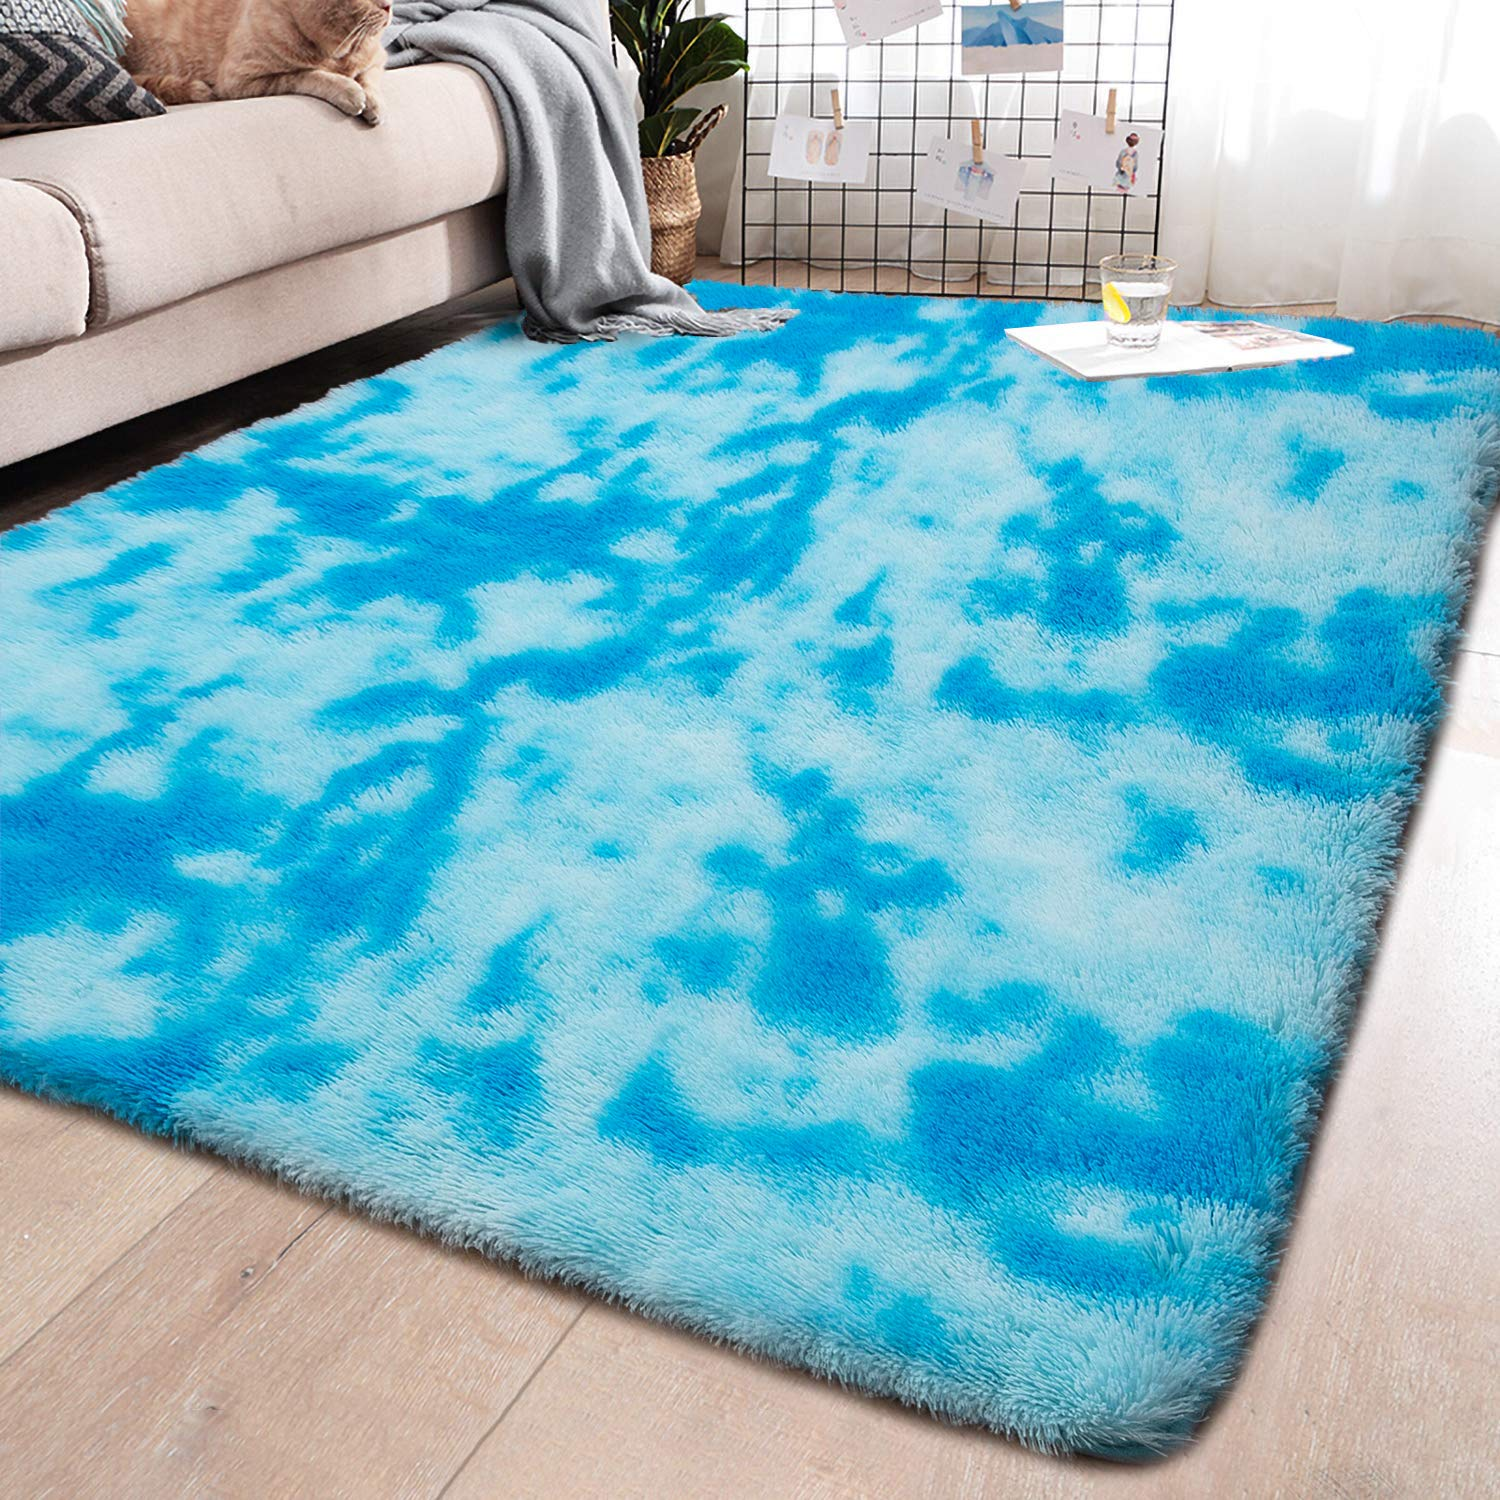 YJ.GWL Soft Indoor Large Modern Area Rugs Shaggy Fluffy Carpets Suitable for Living Room and Bedroom Nursery Rugs Abstract Accent Home Decor Rugs for Girls and Kids 5x8 Feet Blue